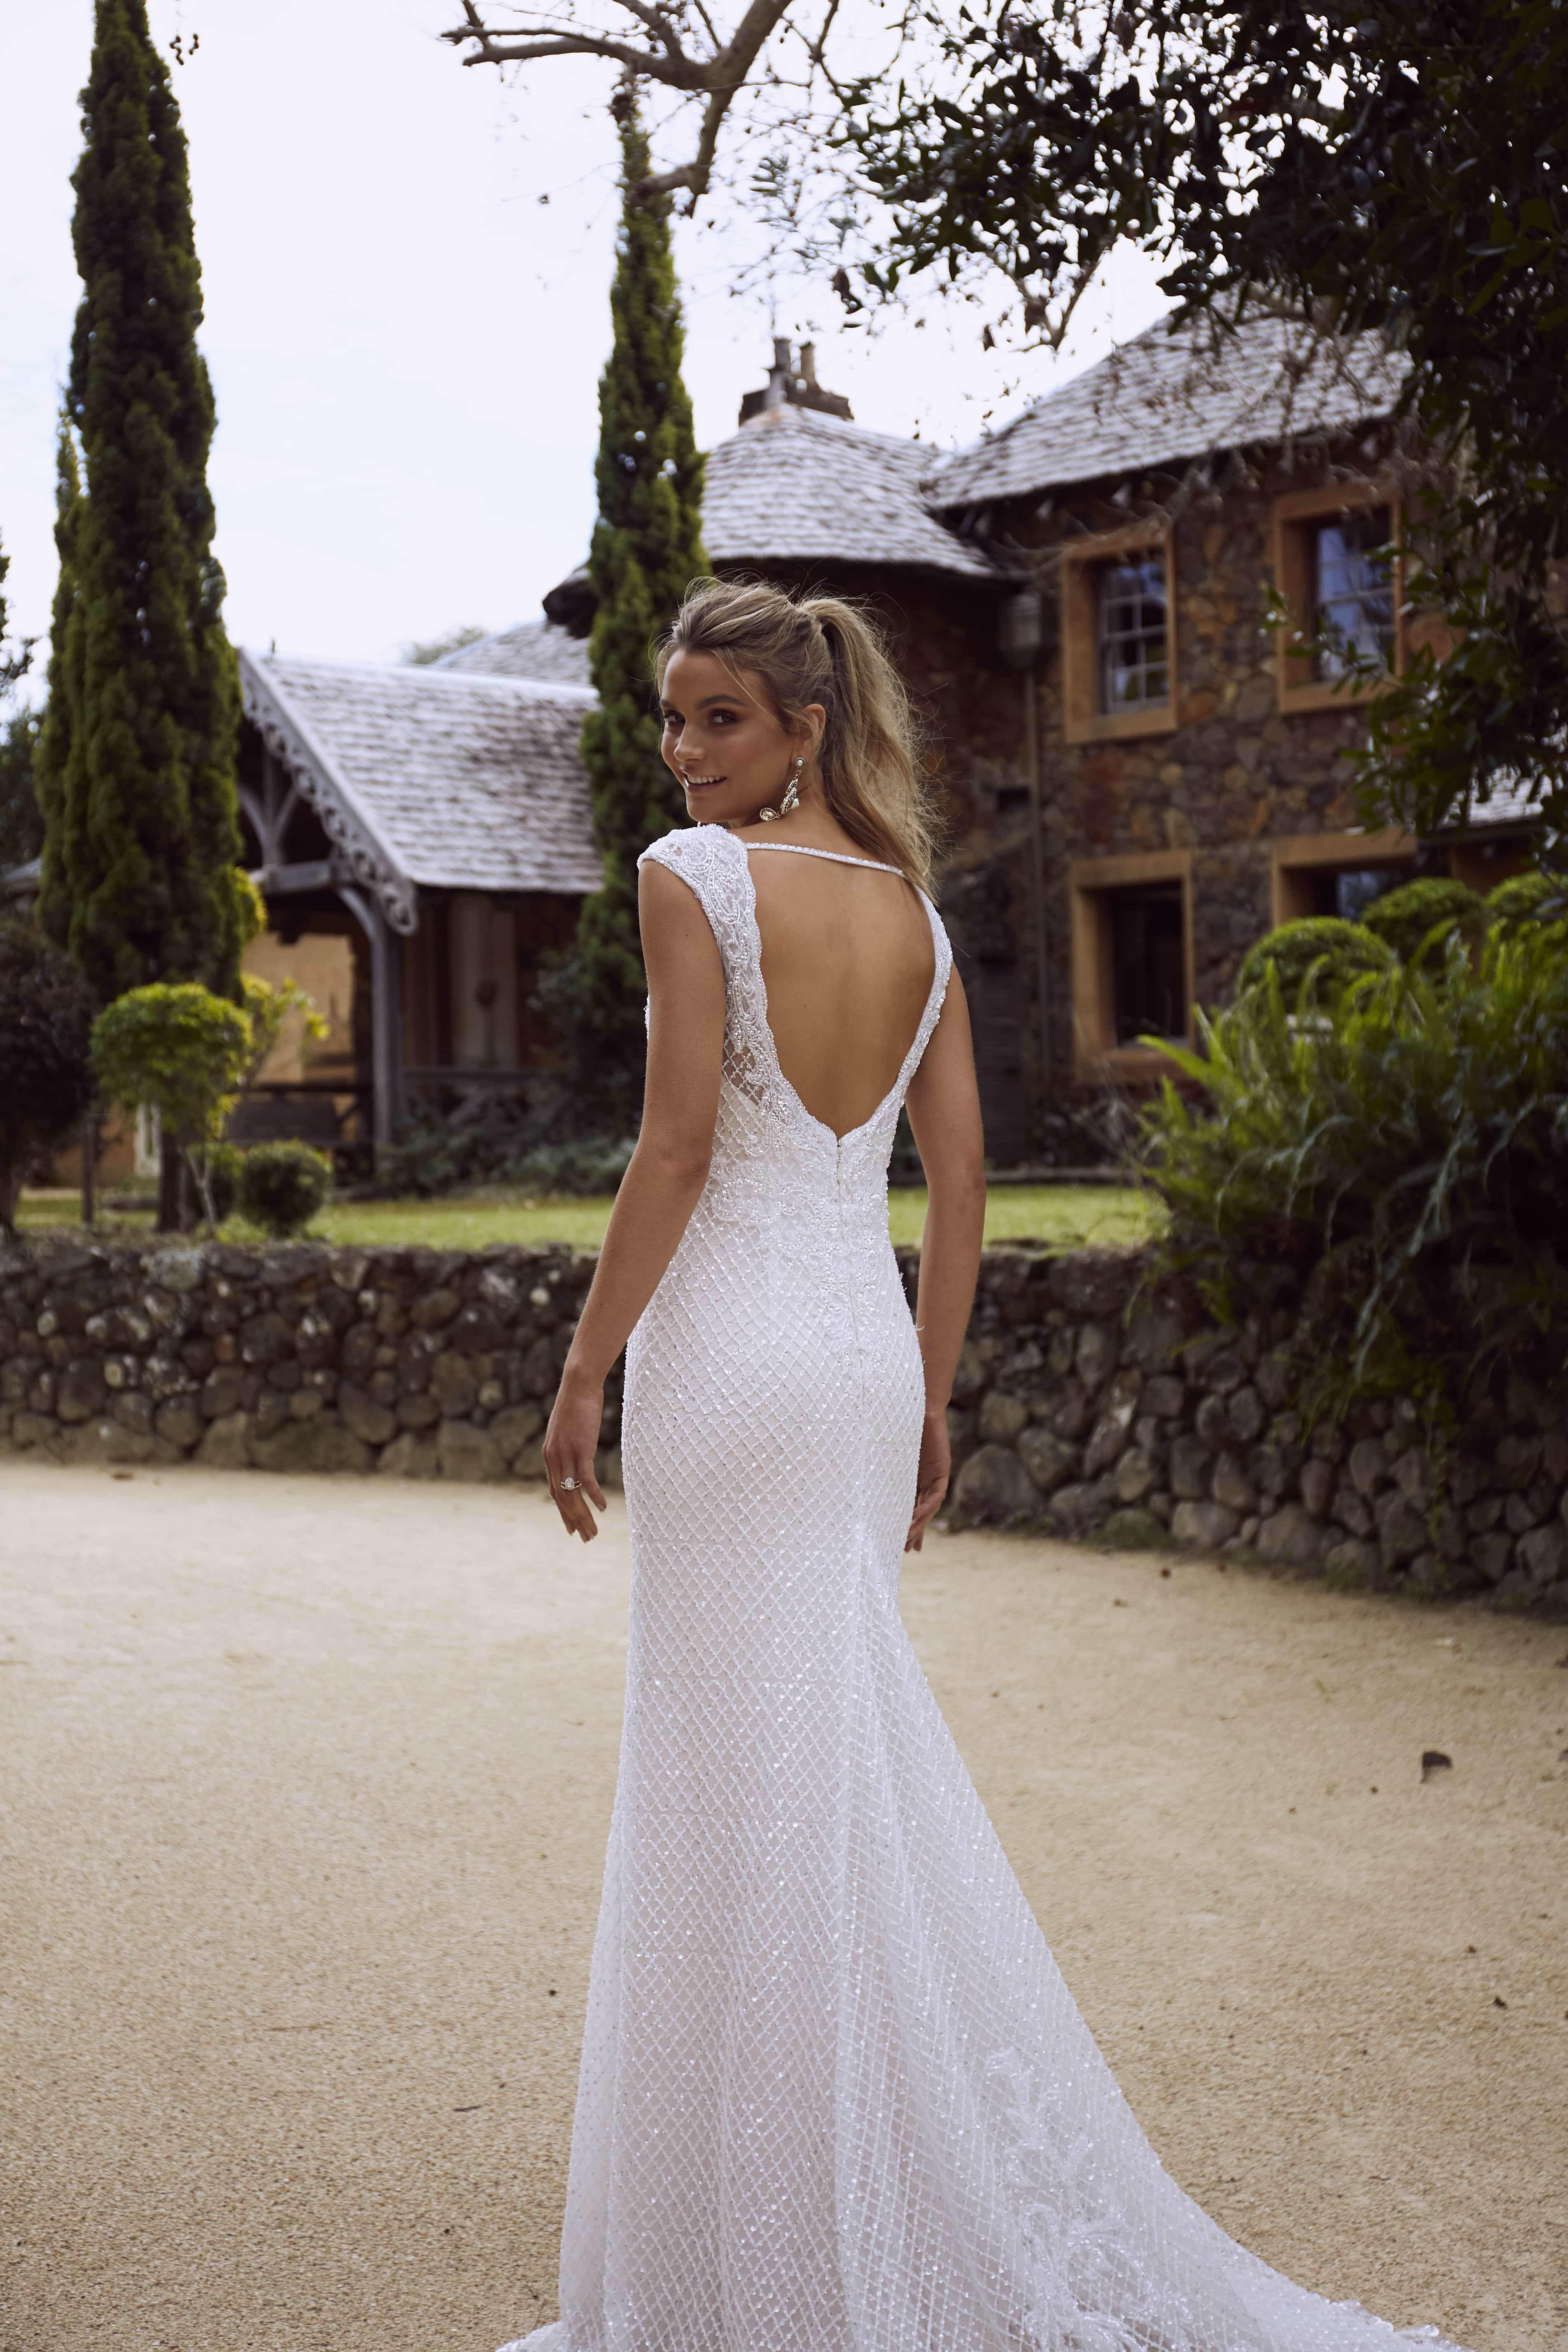 RYLAN ML4218 FULLY BEADED EMBELLISHED V NECK OPEN BACK SHEATH COLUMN WEDDING DRESS MADI LANE LUXE LUV BRIDAL 8